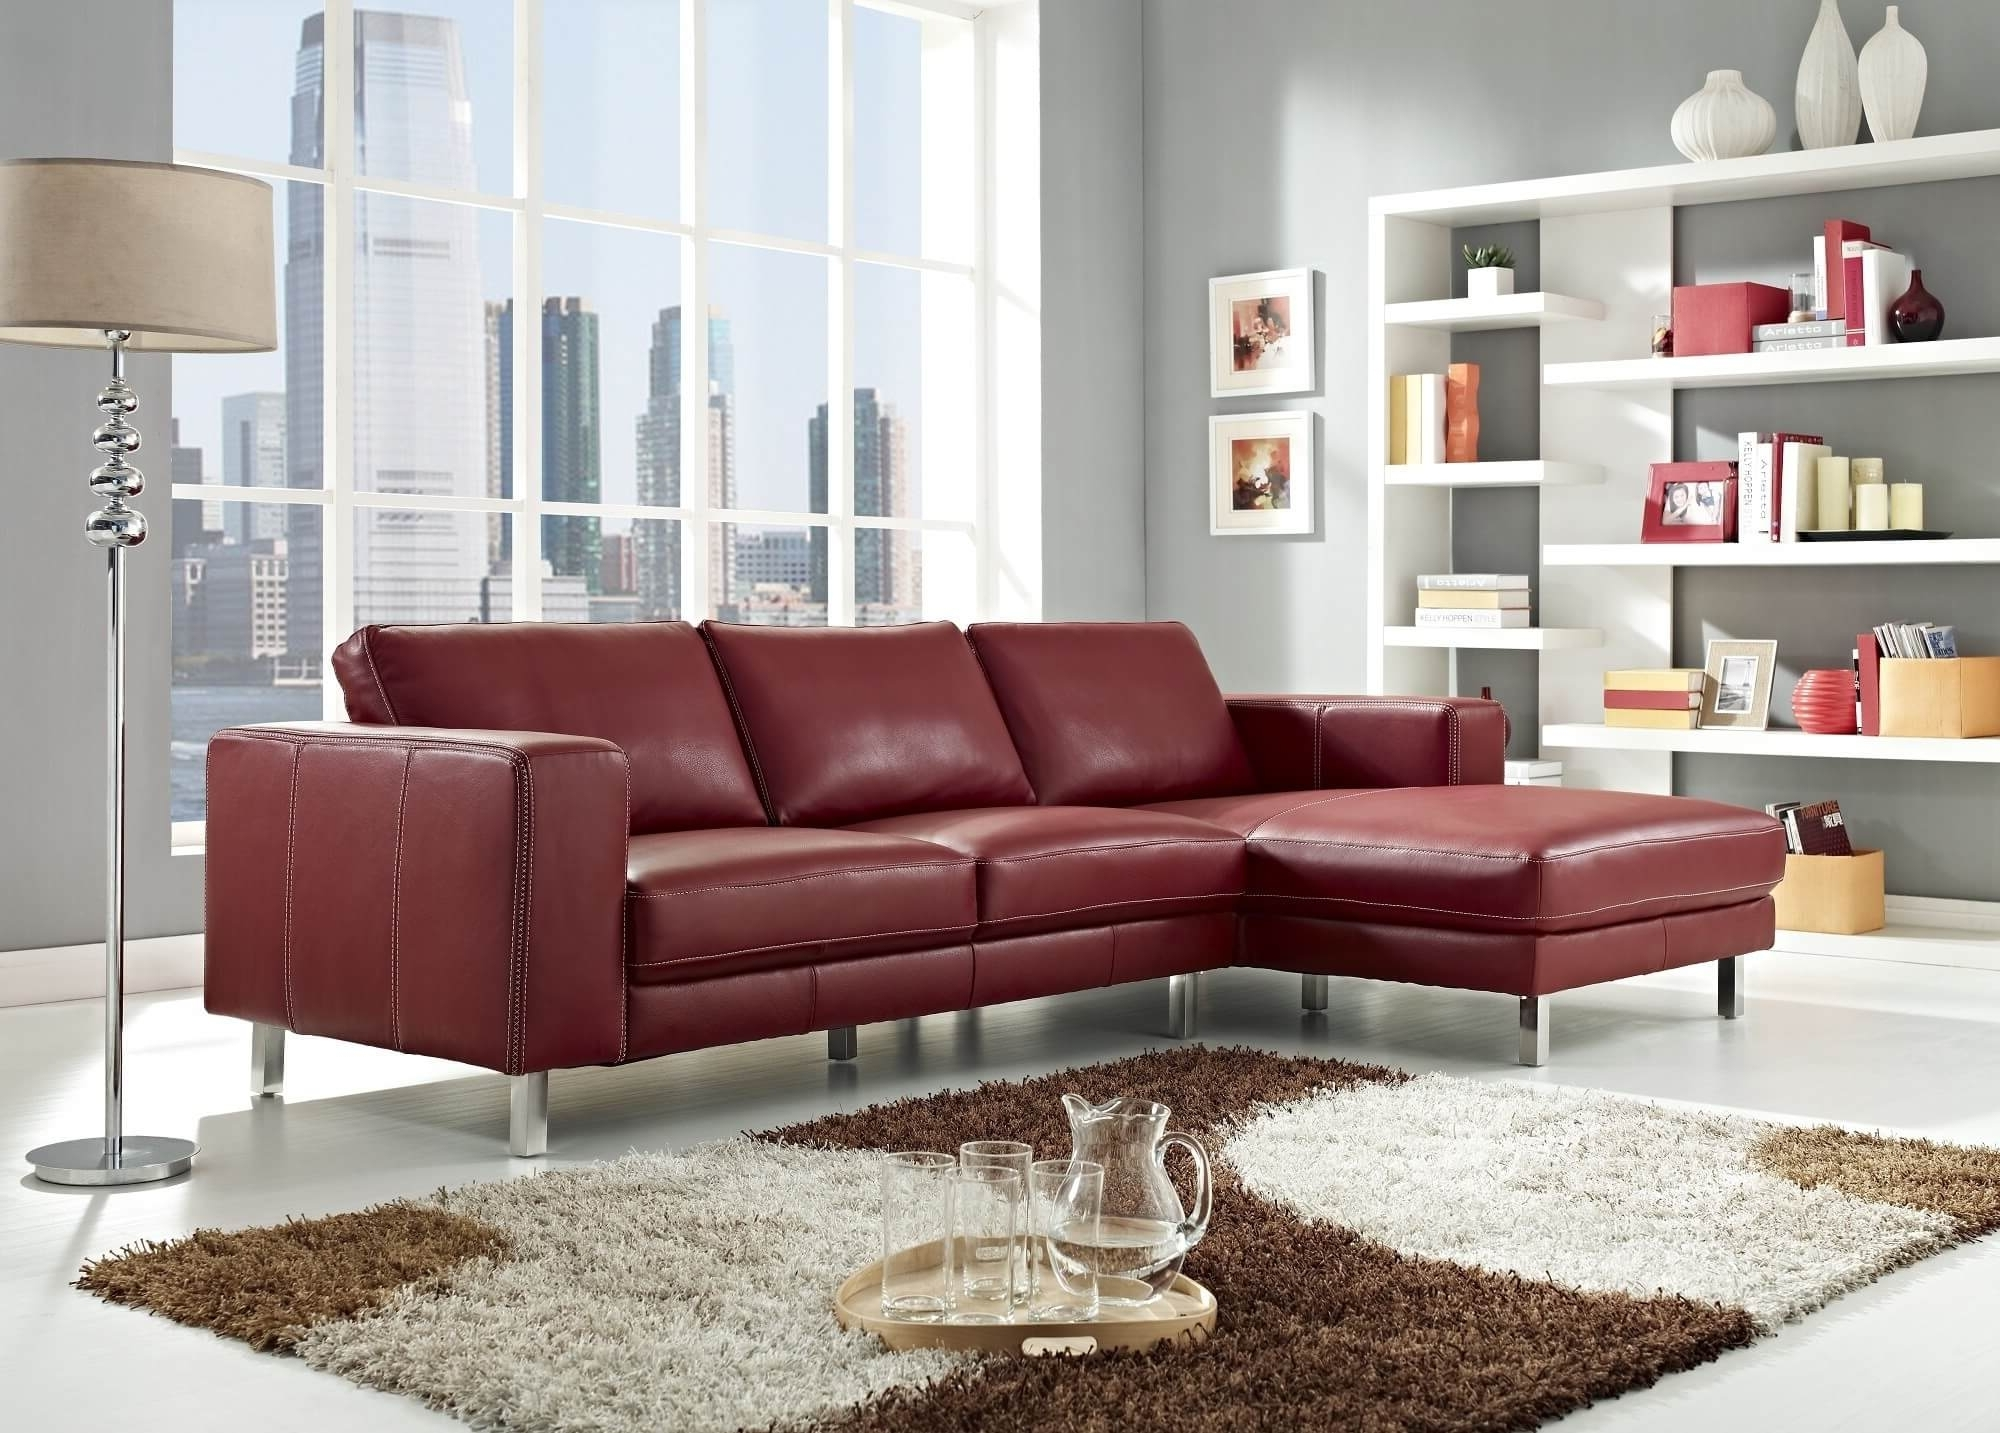 100X80 Sectional Sofas Regarding 2017 75 Modern Sectional Sofas For Small Spaces (2018) (View 14 of 15)